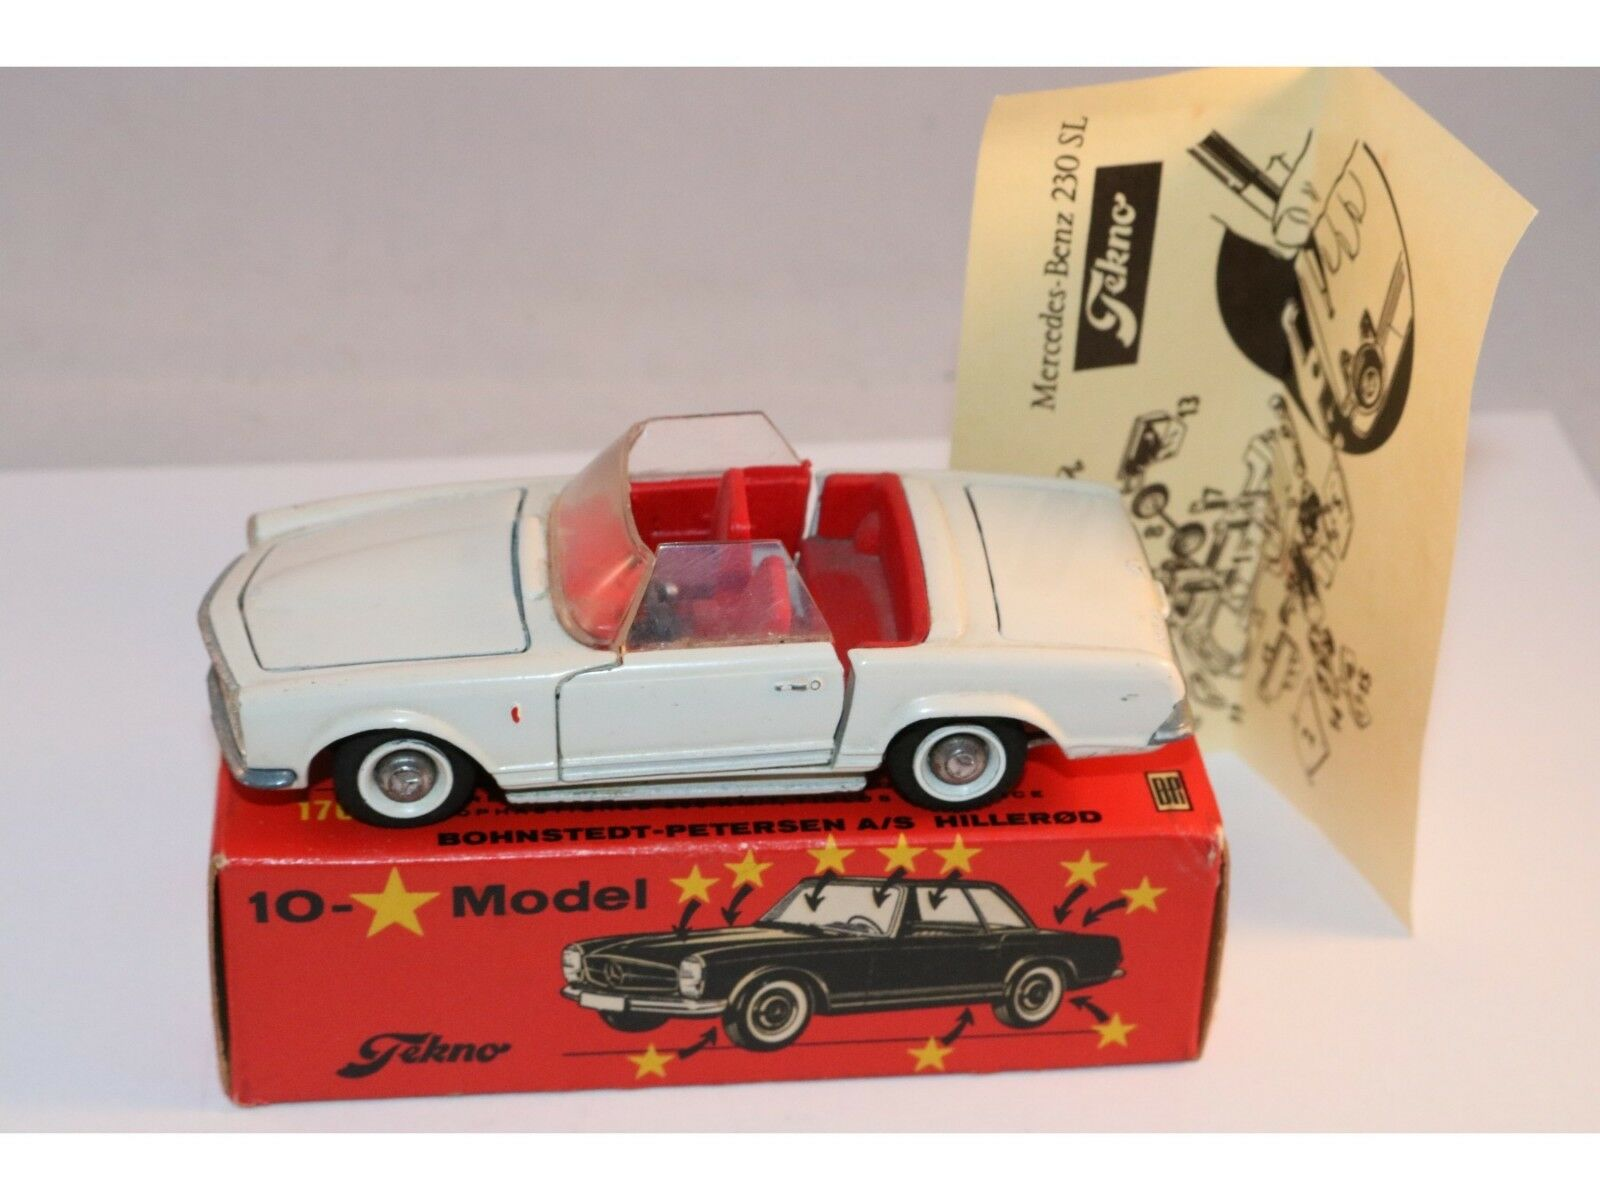 Tekno Denmark 928 Mercedes Benz 230 SL blancoo near mint in box with instructions